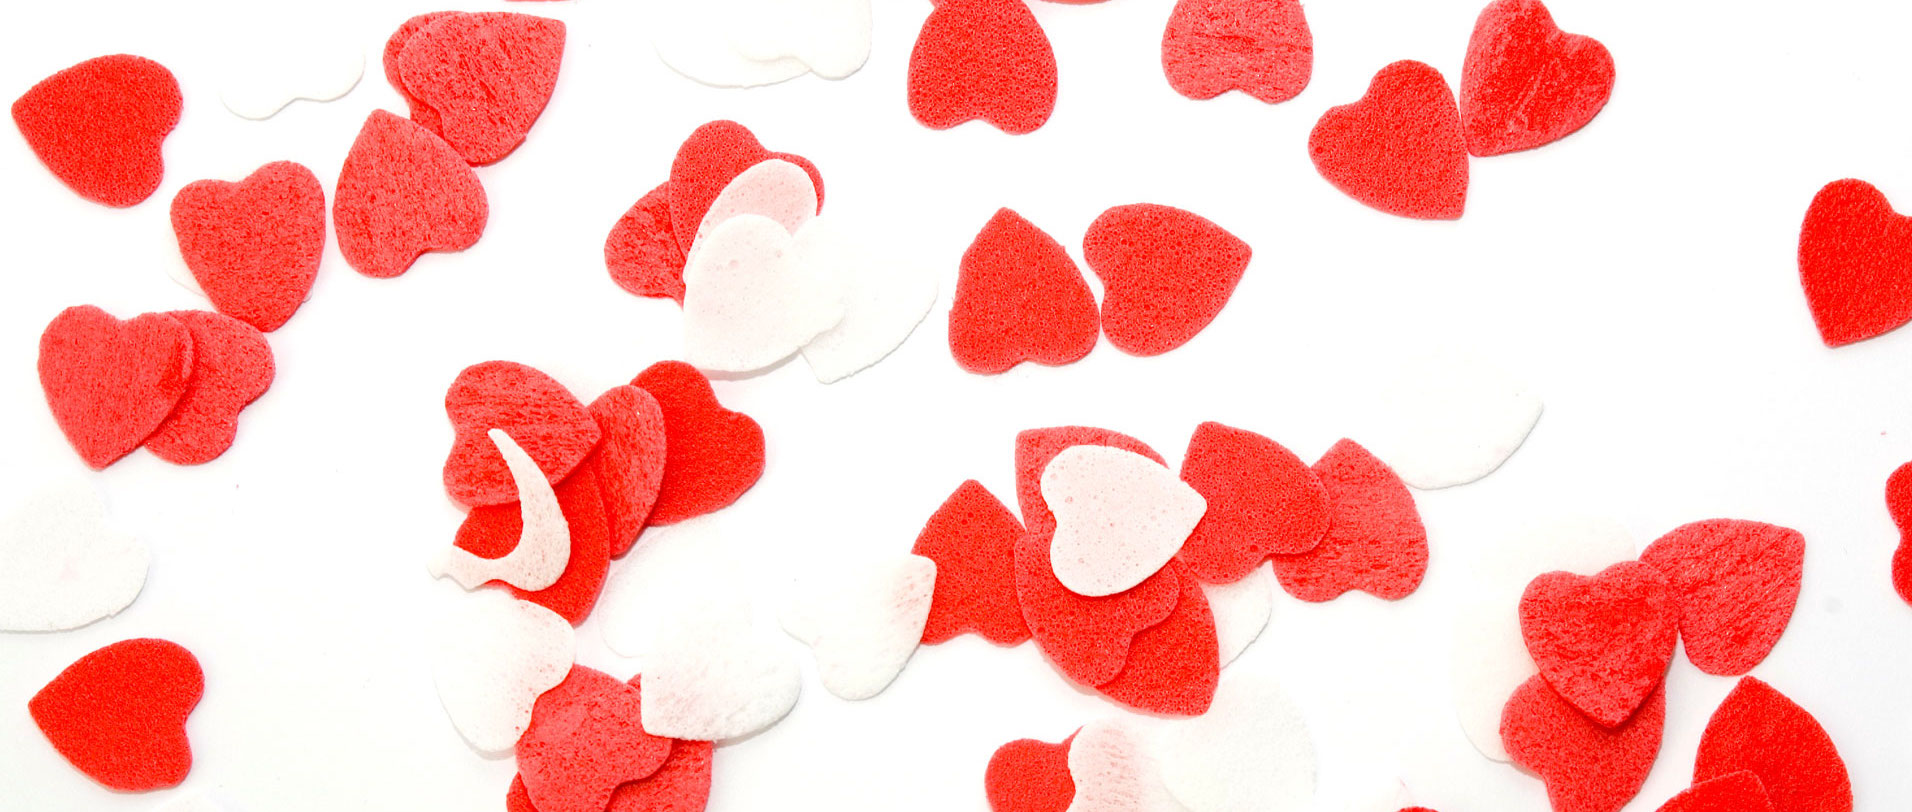 Love-Hearts-Hd-Wallpapers-and-Backgrounds